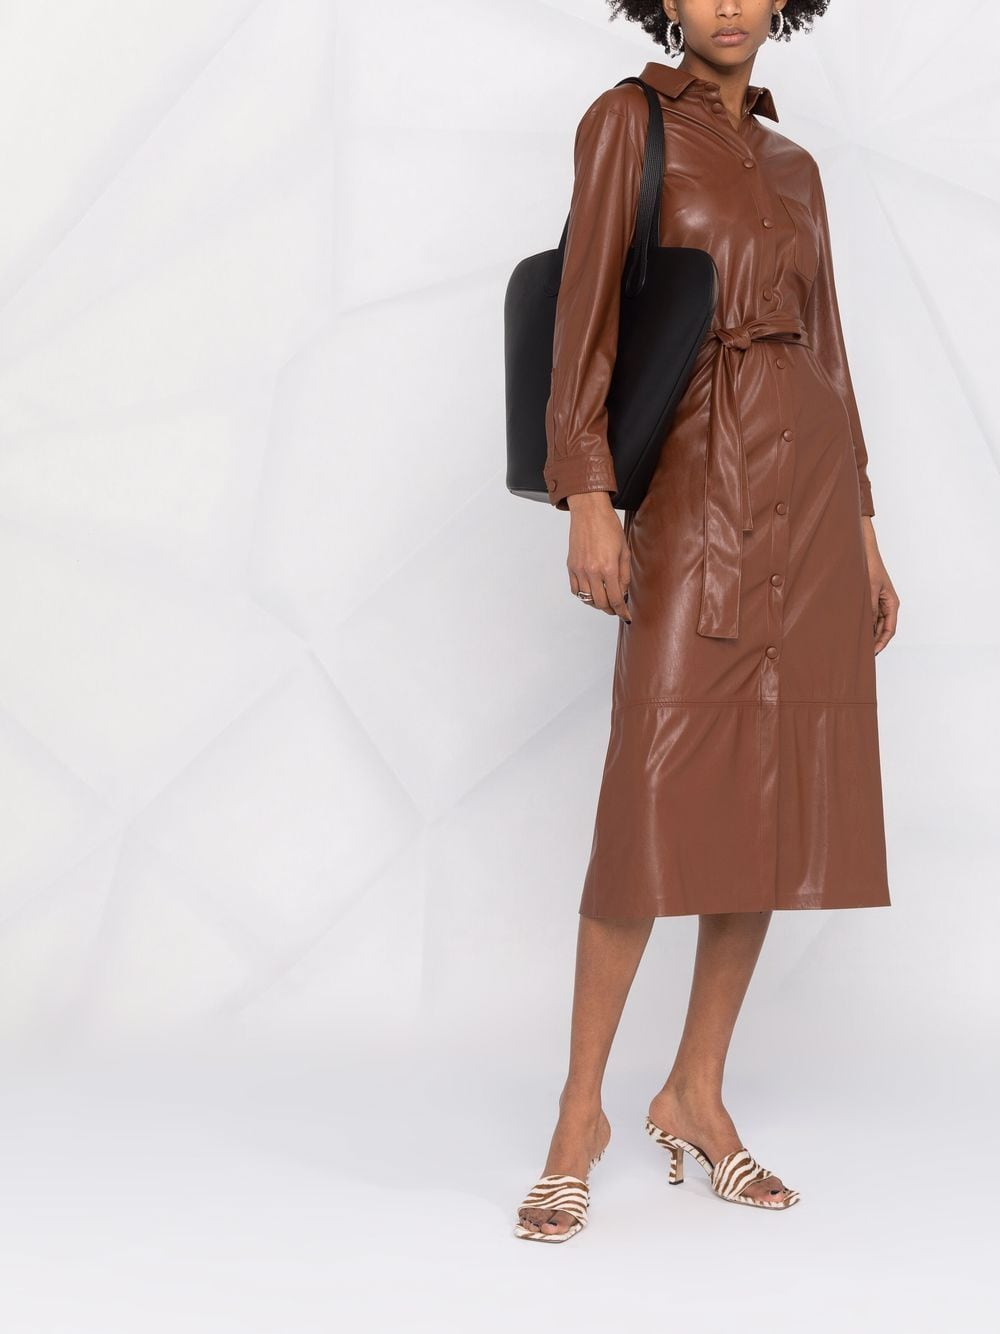 SHOPPING ON LINE PINKO ABITO CHEMISIER EFFETTO PELLE MARIS NEW COLLECTION WOMEN'S FALL/WINTER 2022